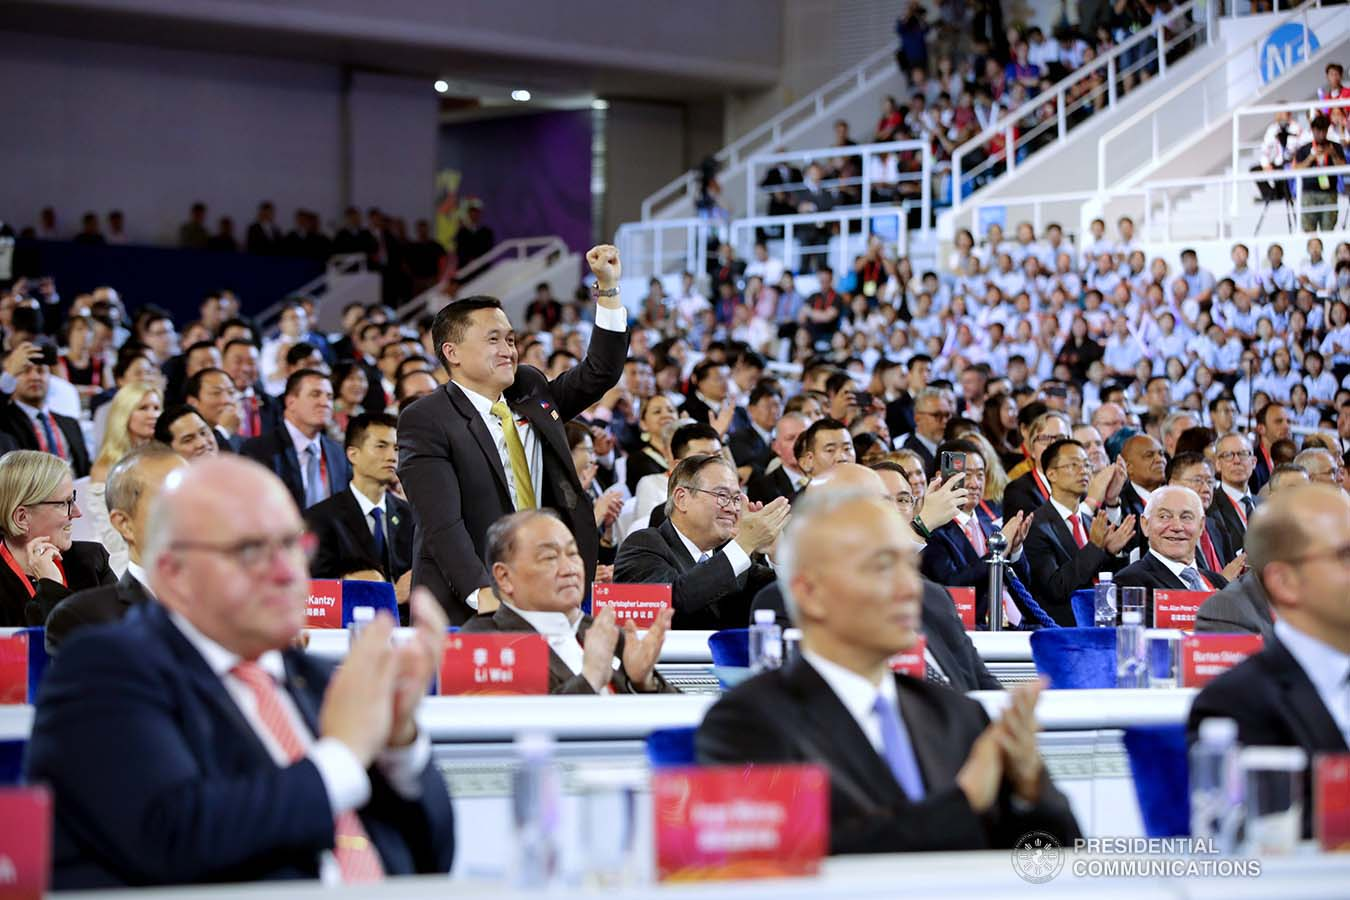 """Senator Christopher """"Bong"""" Go shows his support for Gilas Pilipinas during the opening ceremony of the FIBA Basketball World Cup 2019 at the National Aquatics Center in Beijing, People's Republic of China on August 30, 2019. President Rodrigo Roa Duterte was among the guests during the opening of the prestigious international cagefest. ROBINSON NIÑAL JR./PRESIDENTIAL PHOTO"""